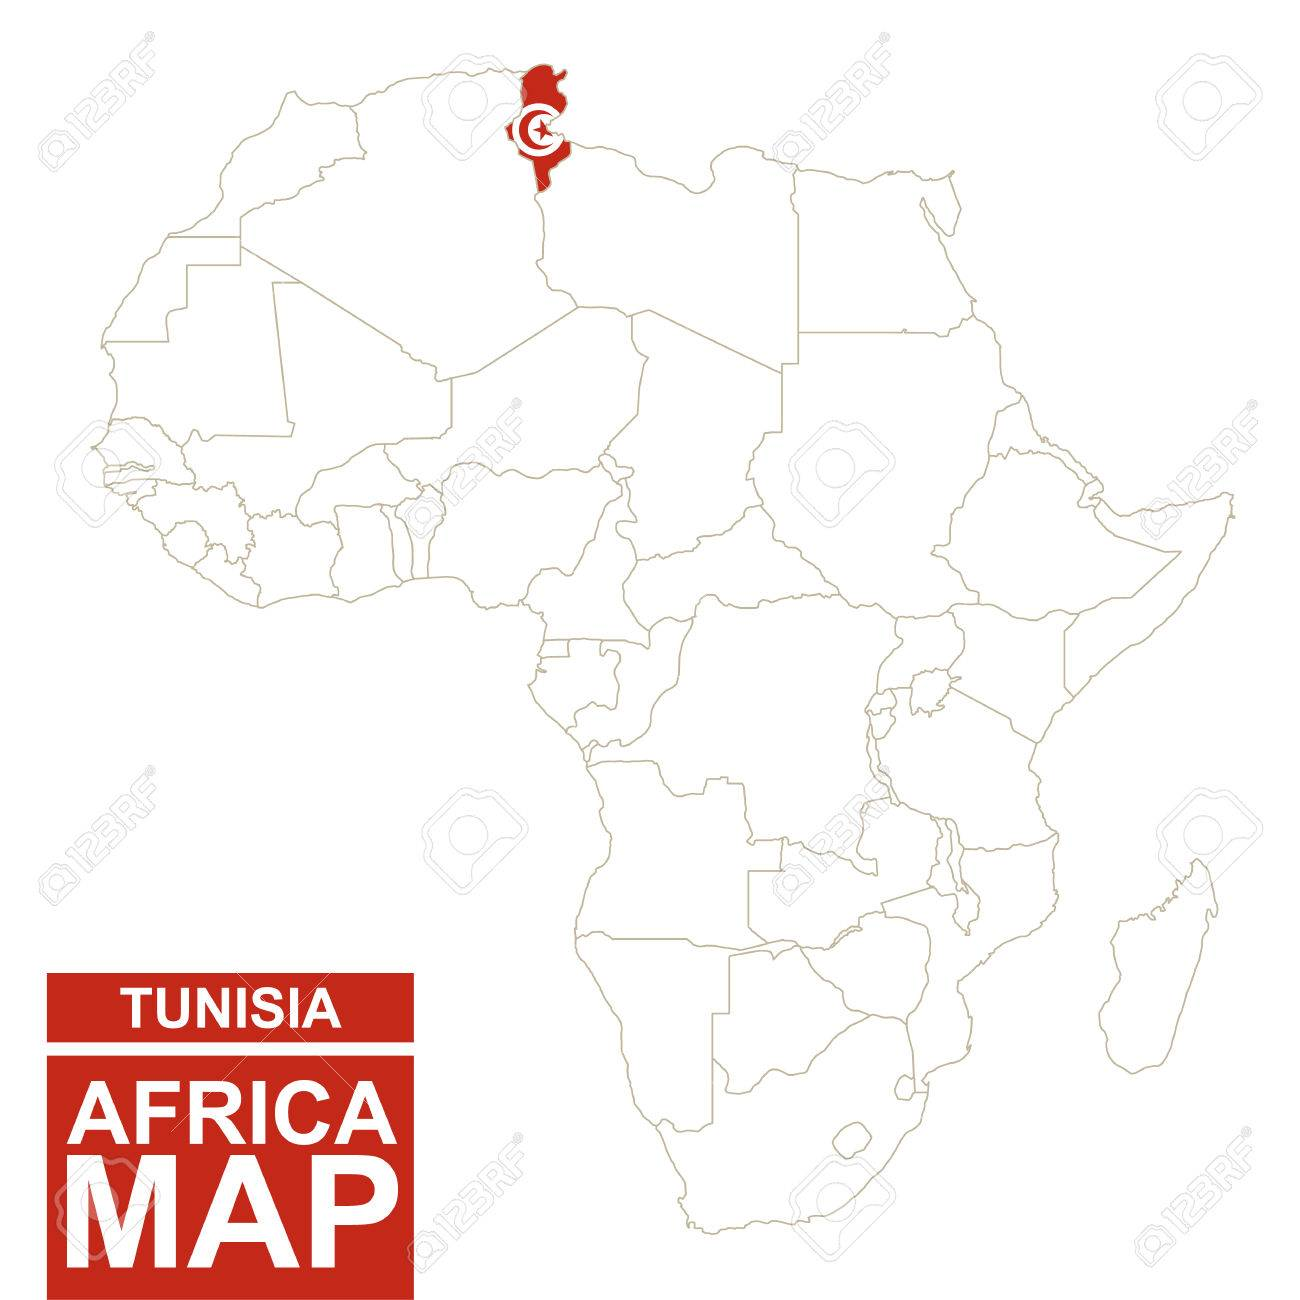 Africa Contoured Map With Highlighted Tunisia. Tunisia Map And ...